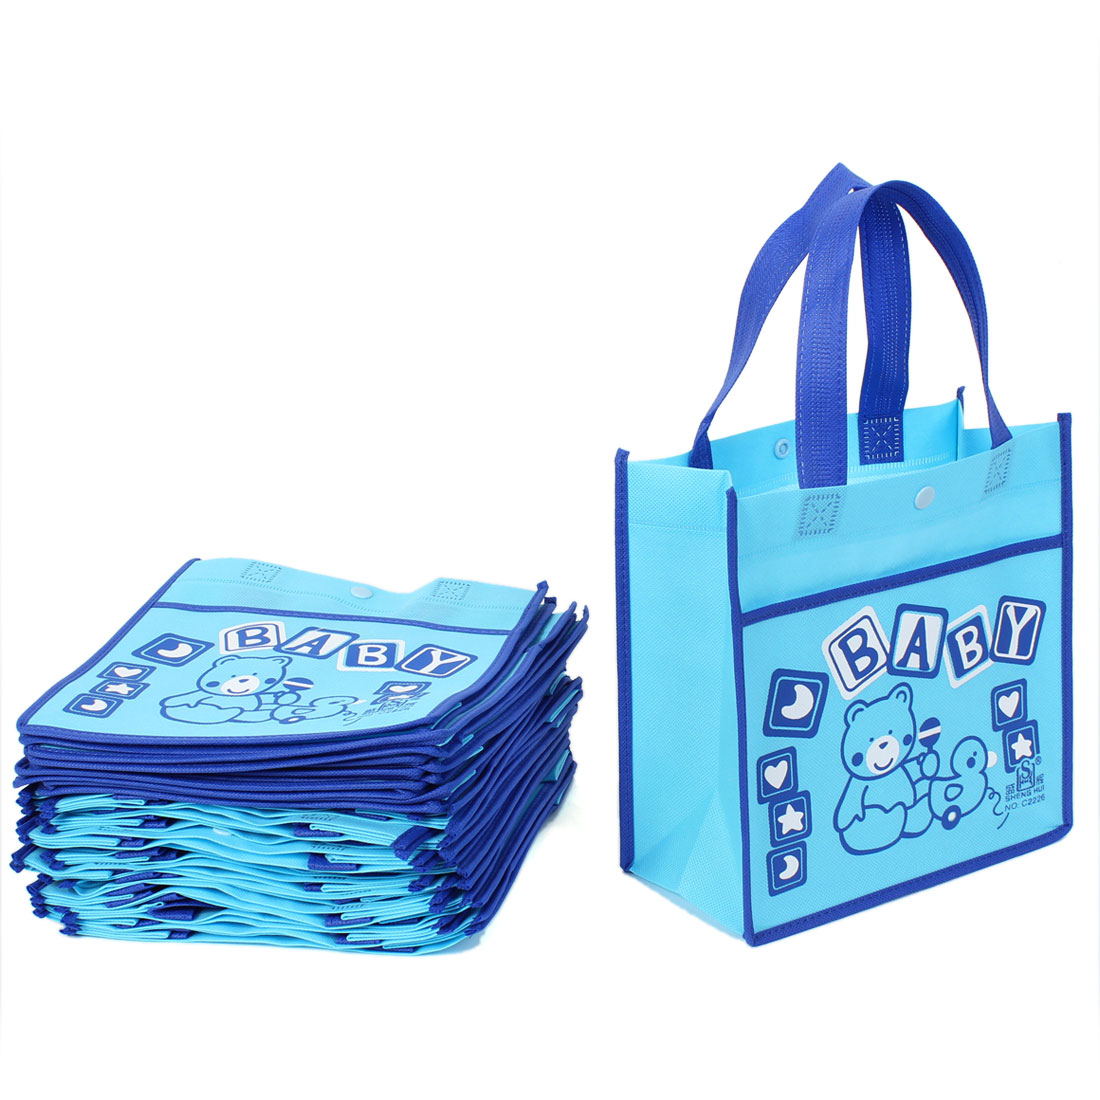 20pcs Cartoon Pattern Reusable Shopping Non Woven Bags Tote 22 x 22cm